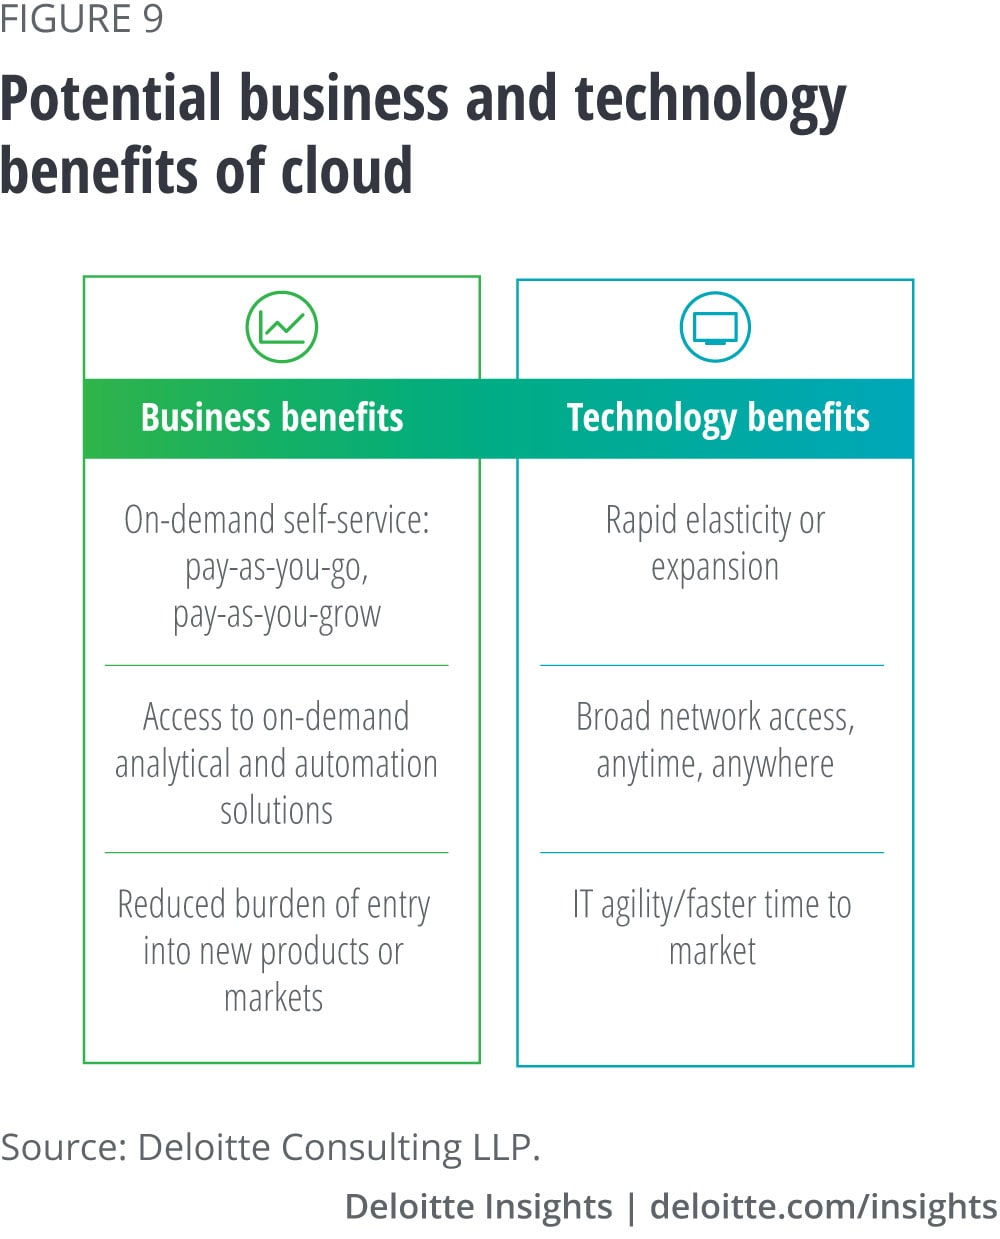 Potential business and technology benefits of cloud